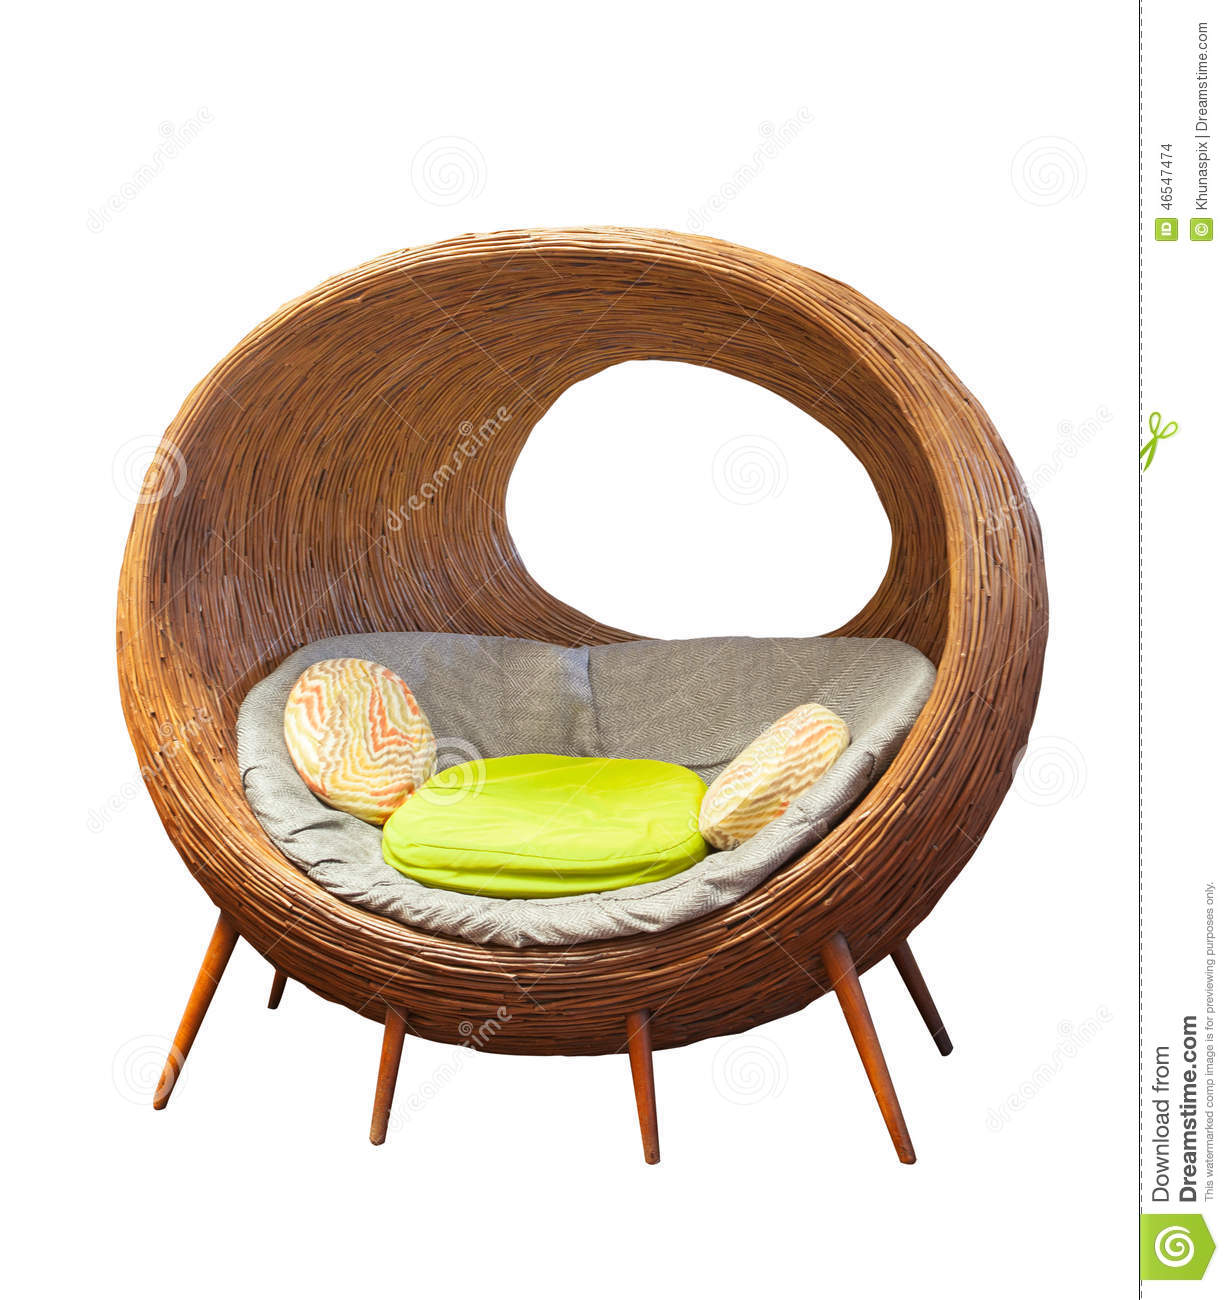 Rattan Round Wicker Patio Chairs For Home Living Room Decorated